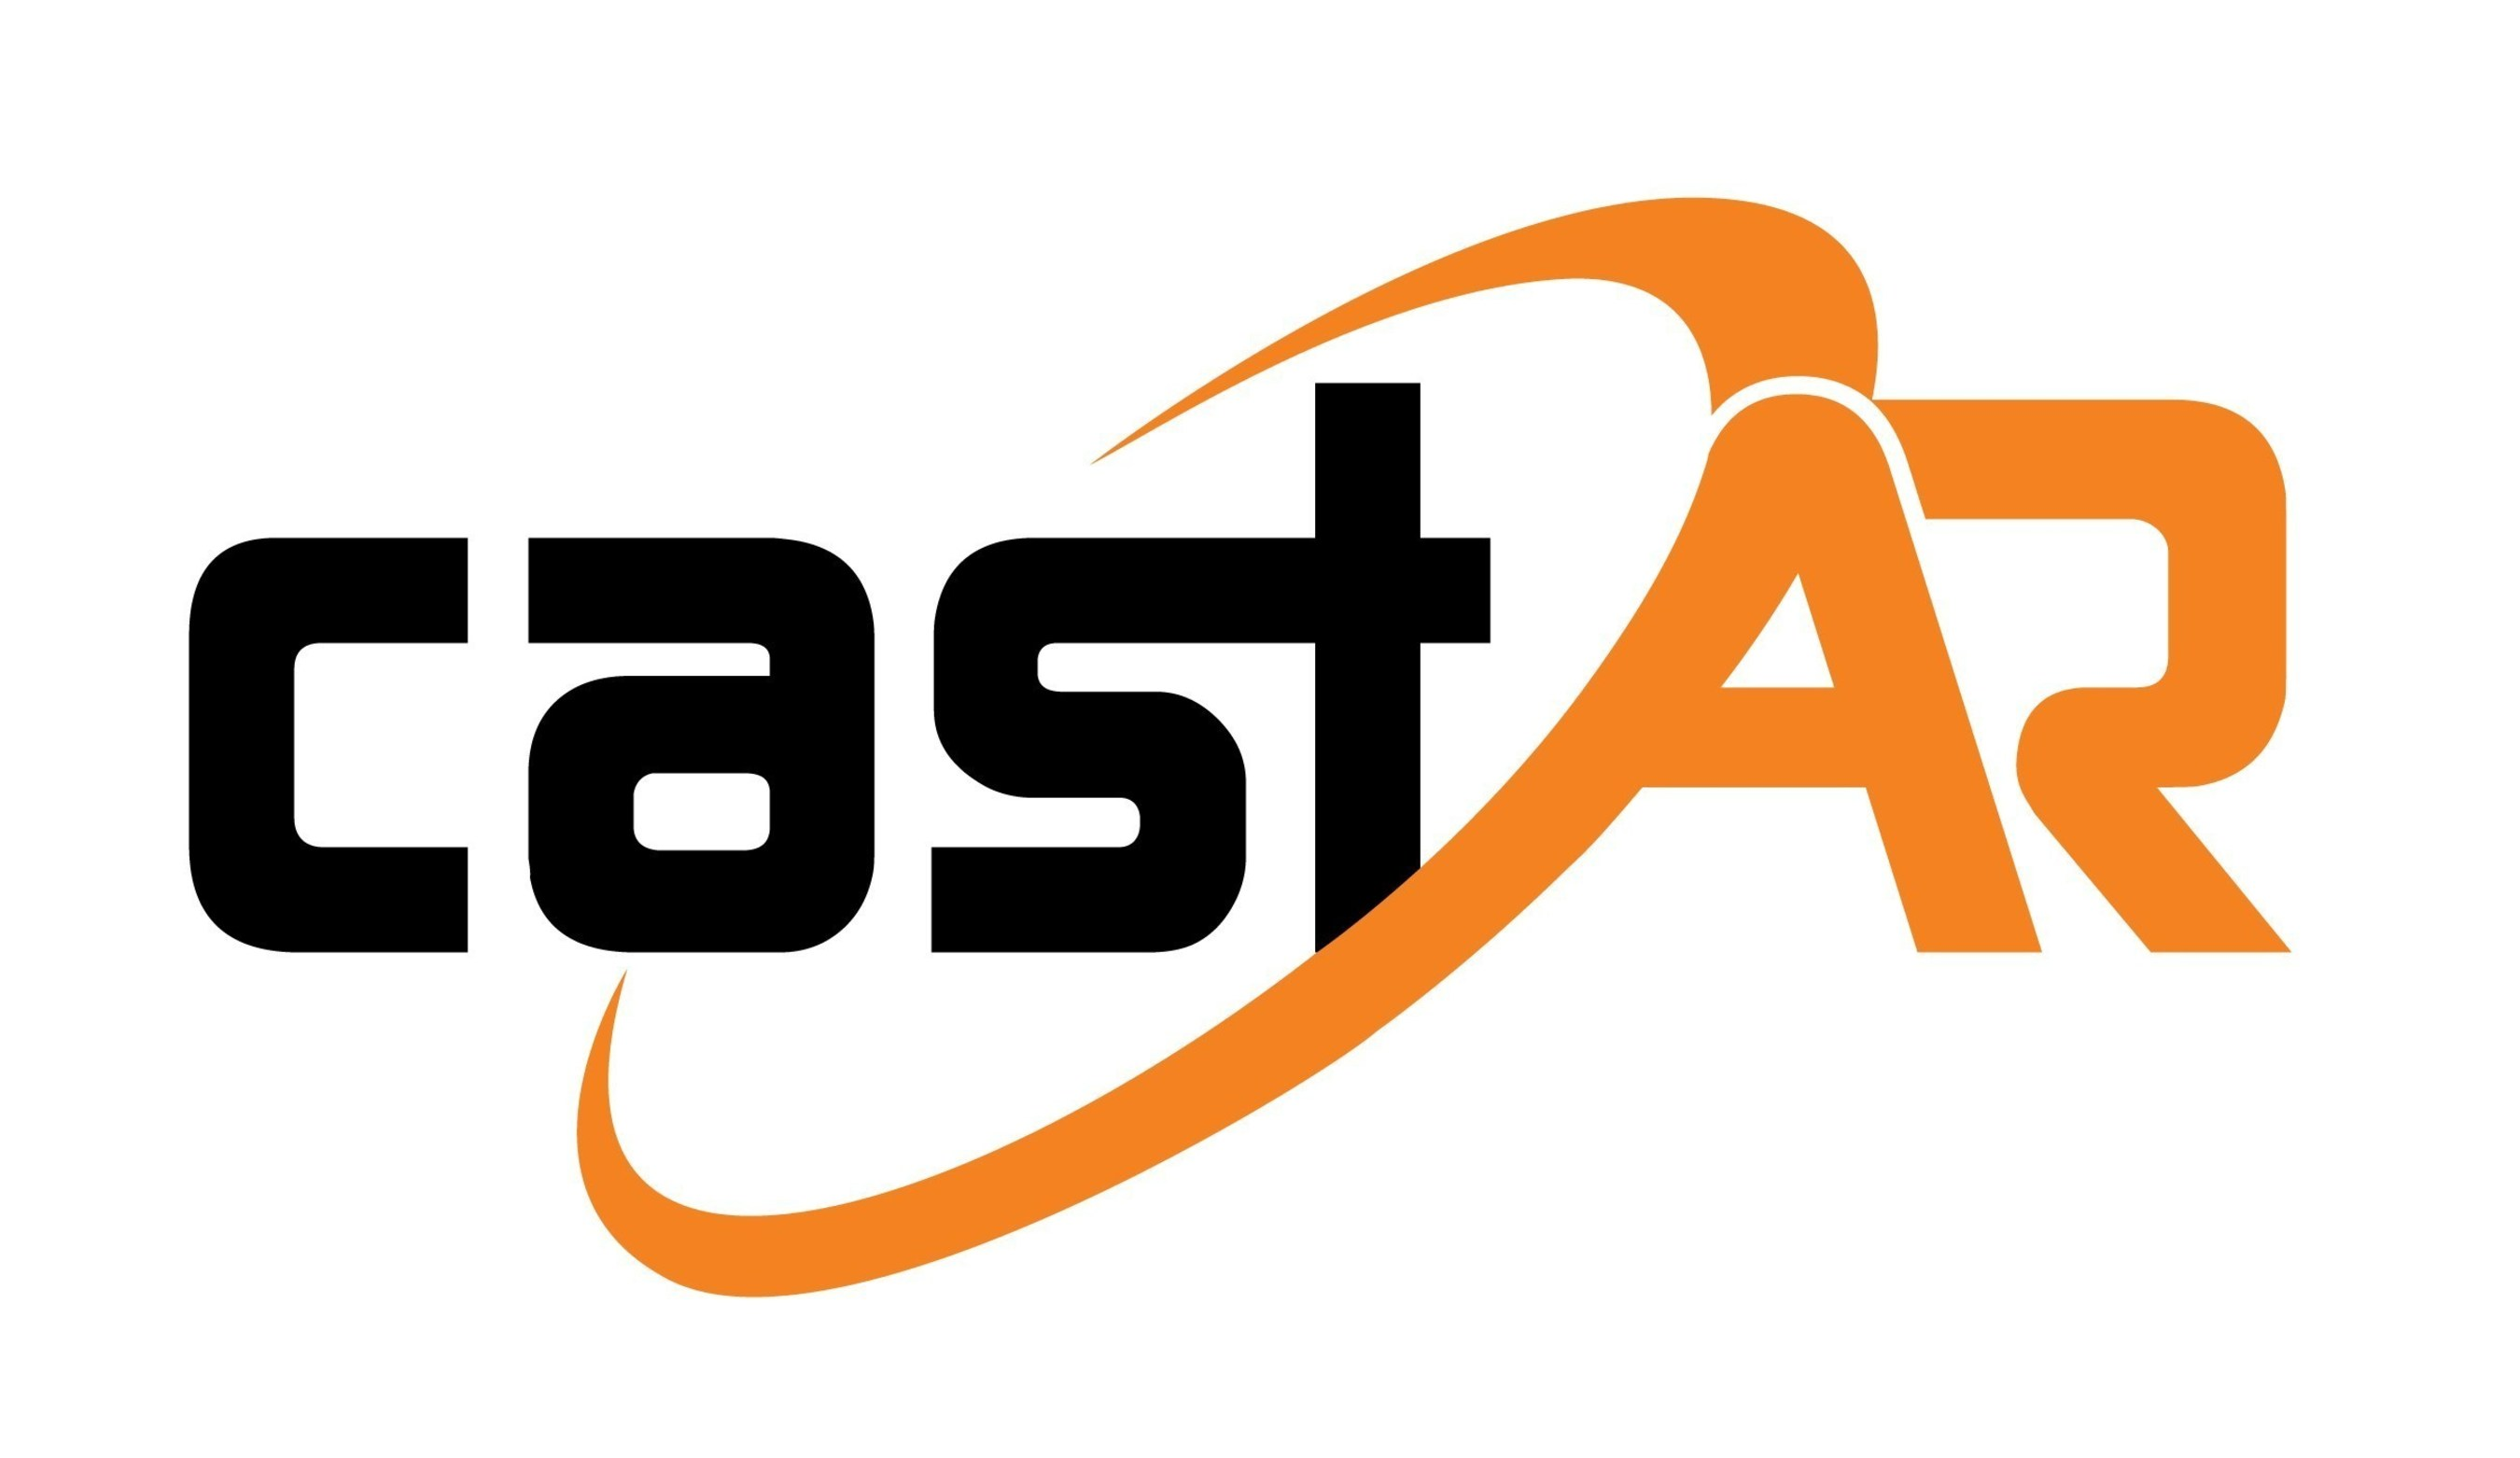 Augmented reality gaming startup castAR has raised a $15M Series A round from Andy Rubin's Playground Global.